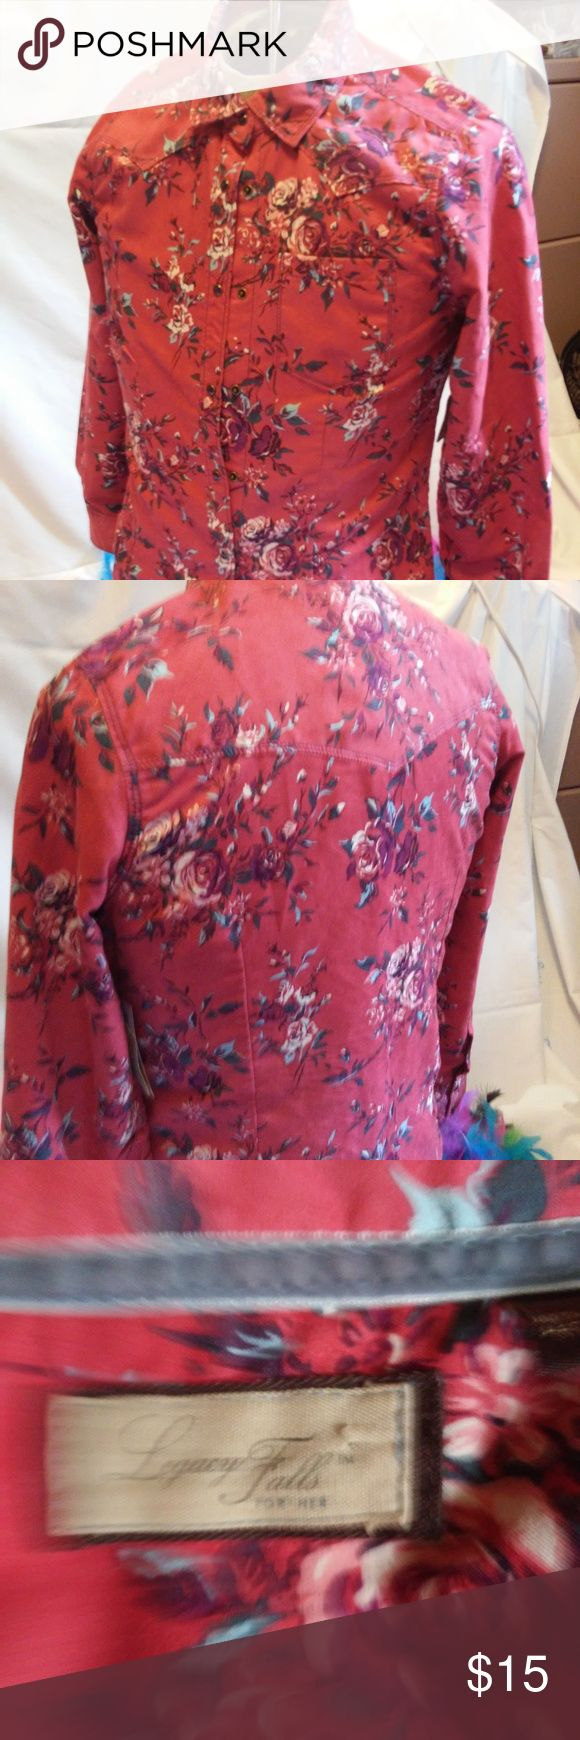 Legacy Falls for Her-Deep Rust with Rose - Size S New w/Tags - Western Style long sleeve shirt with glass snaps and rose design.  No stains or rips  Bust - 20 Shoulders - 15 Length - 27 Sleeve - 25  Dress up some jeans and cowboy boots Thanks for shopping Legacy Falls for Her Tops Button Down Shirts